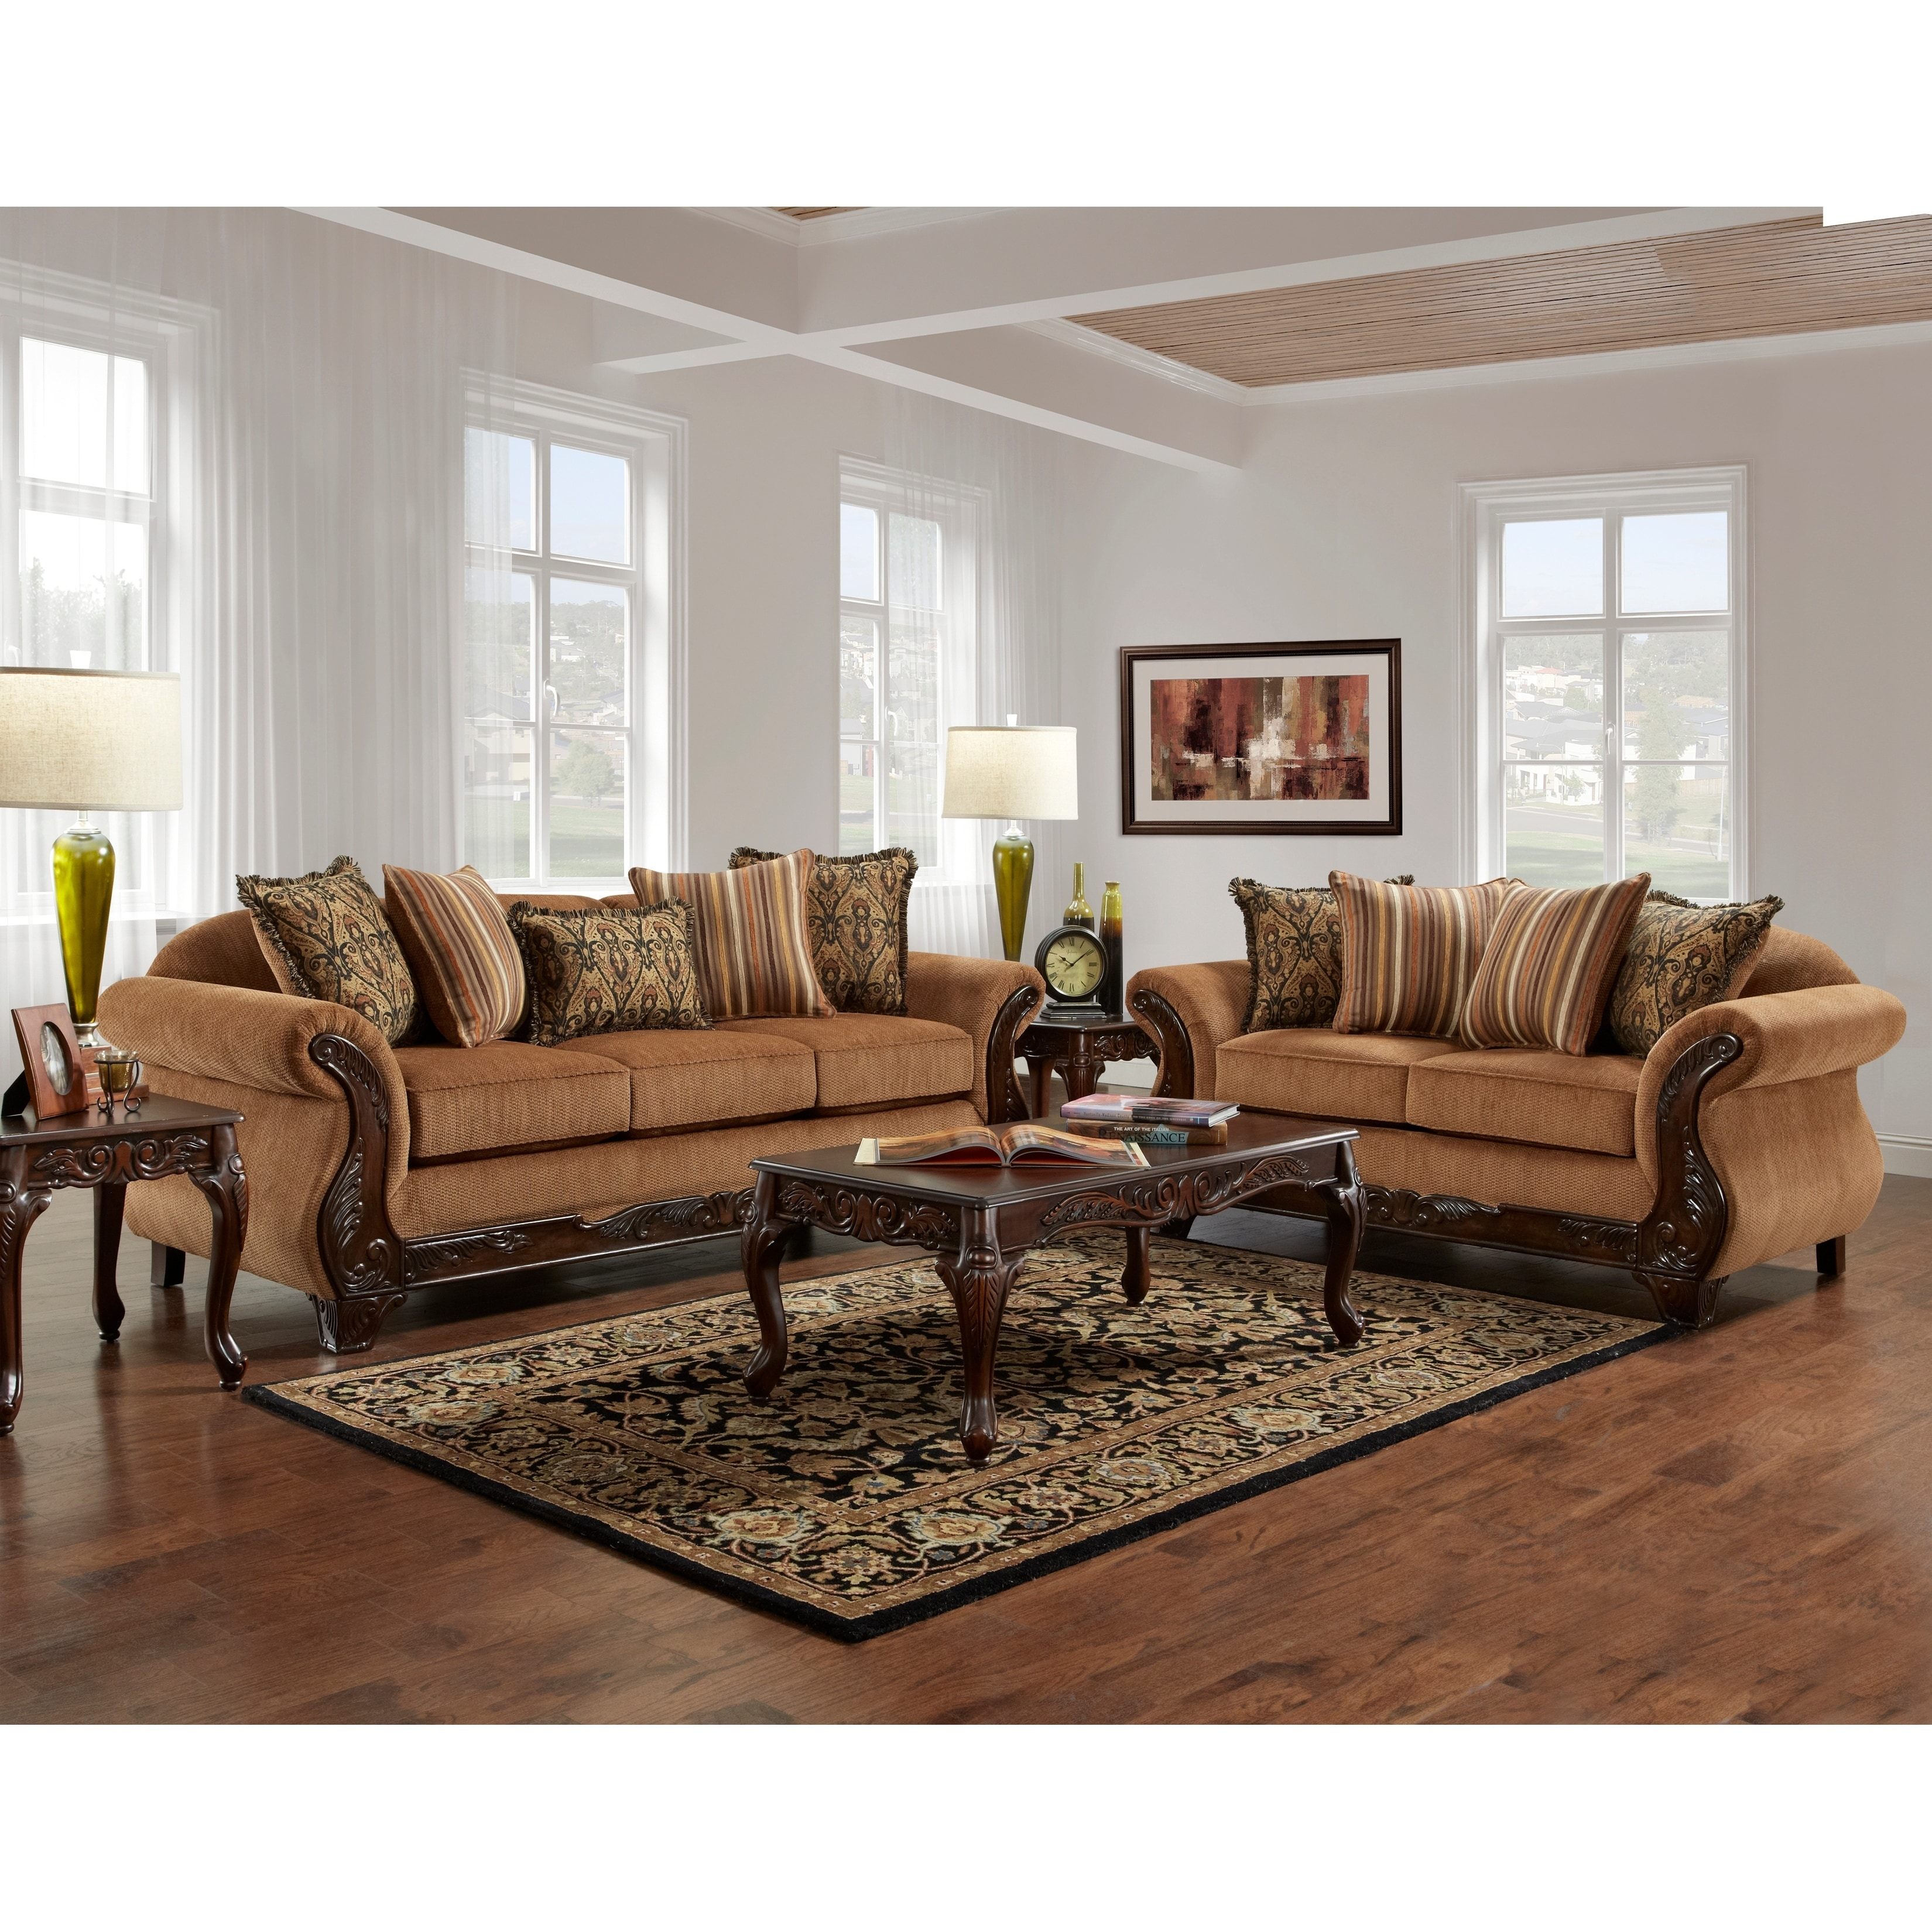 Sofa Trendz Barnes 2pc Sofa and Loveseat